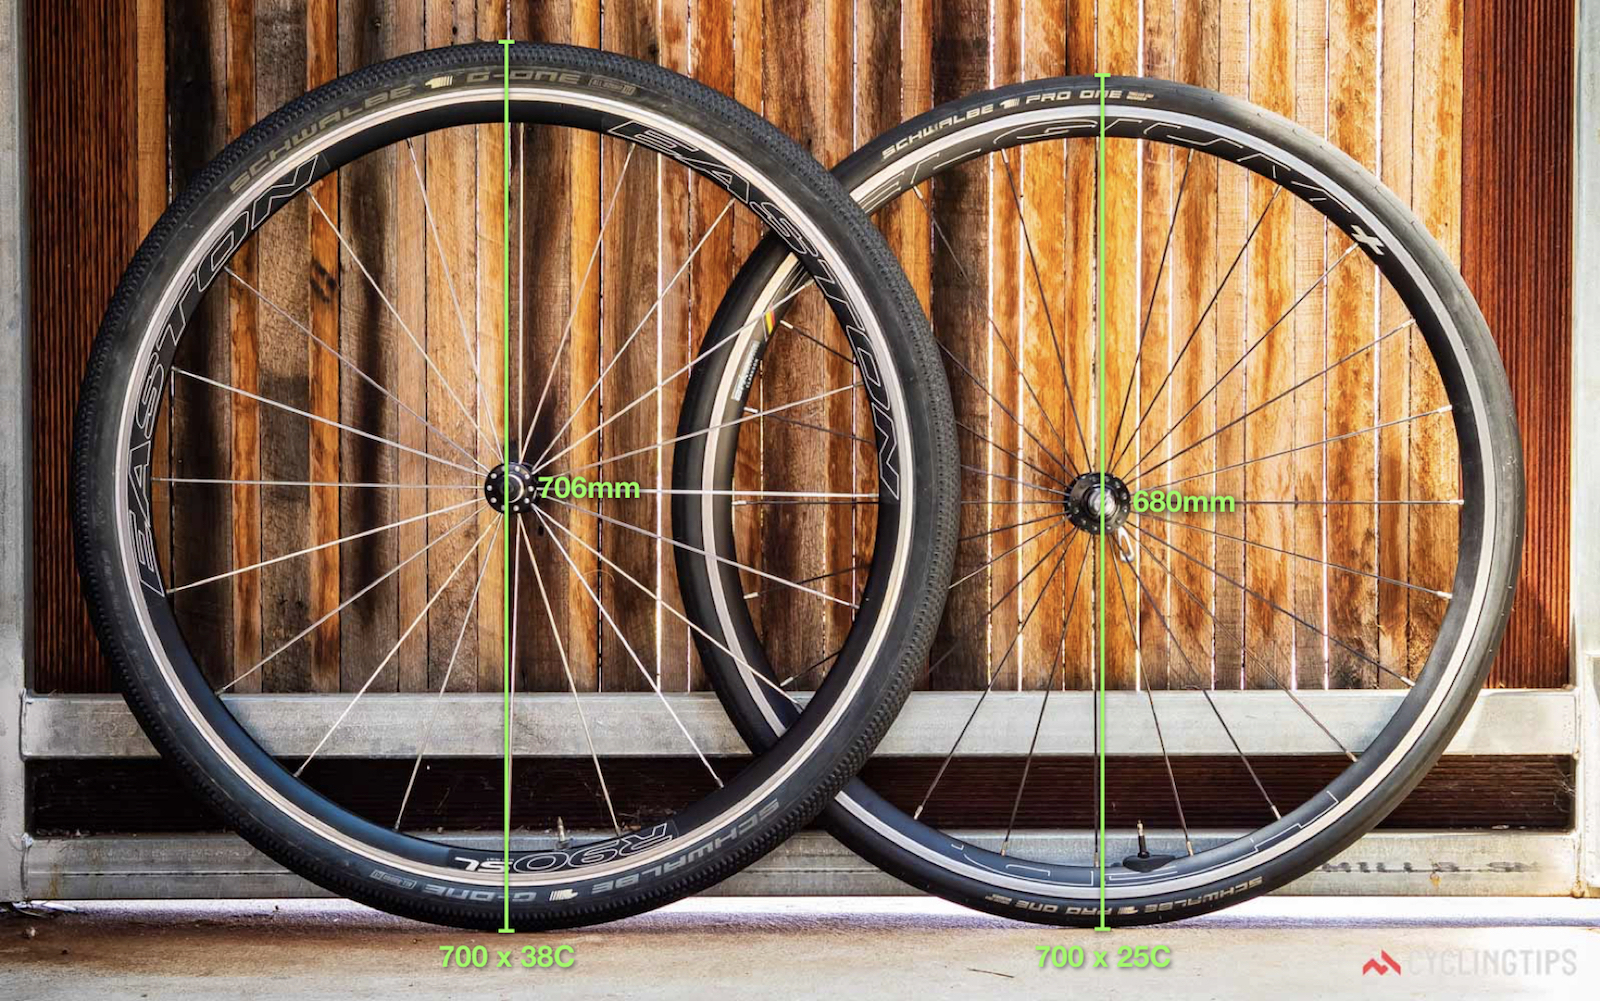 the diameter of wheel increases with wider tyres